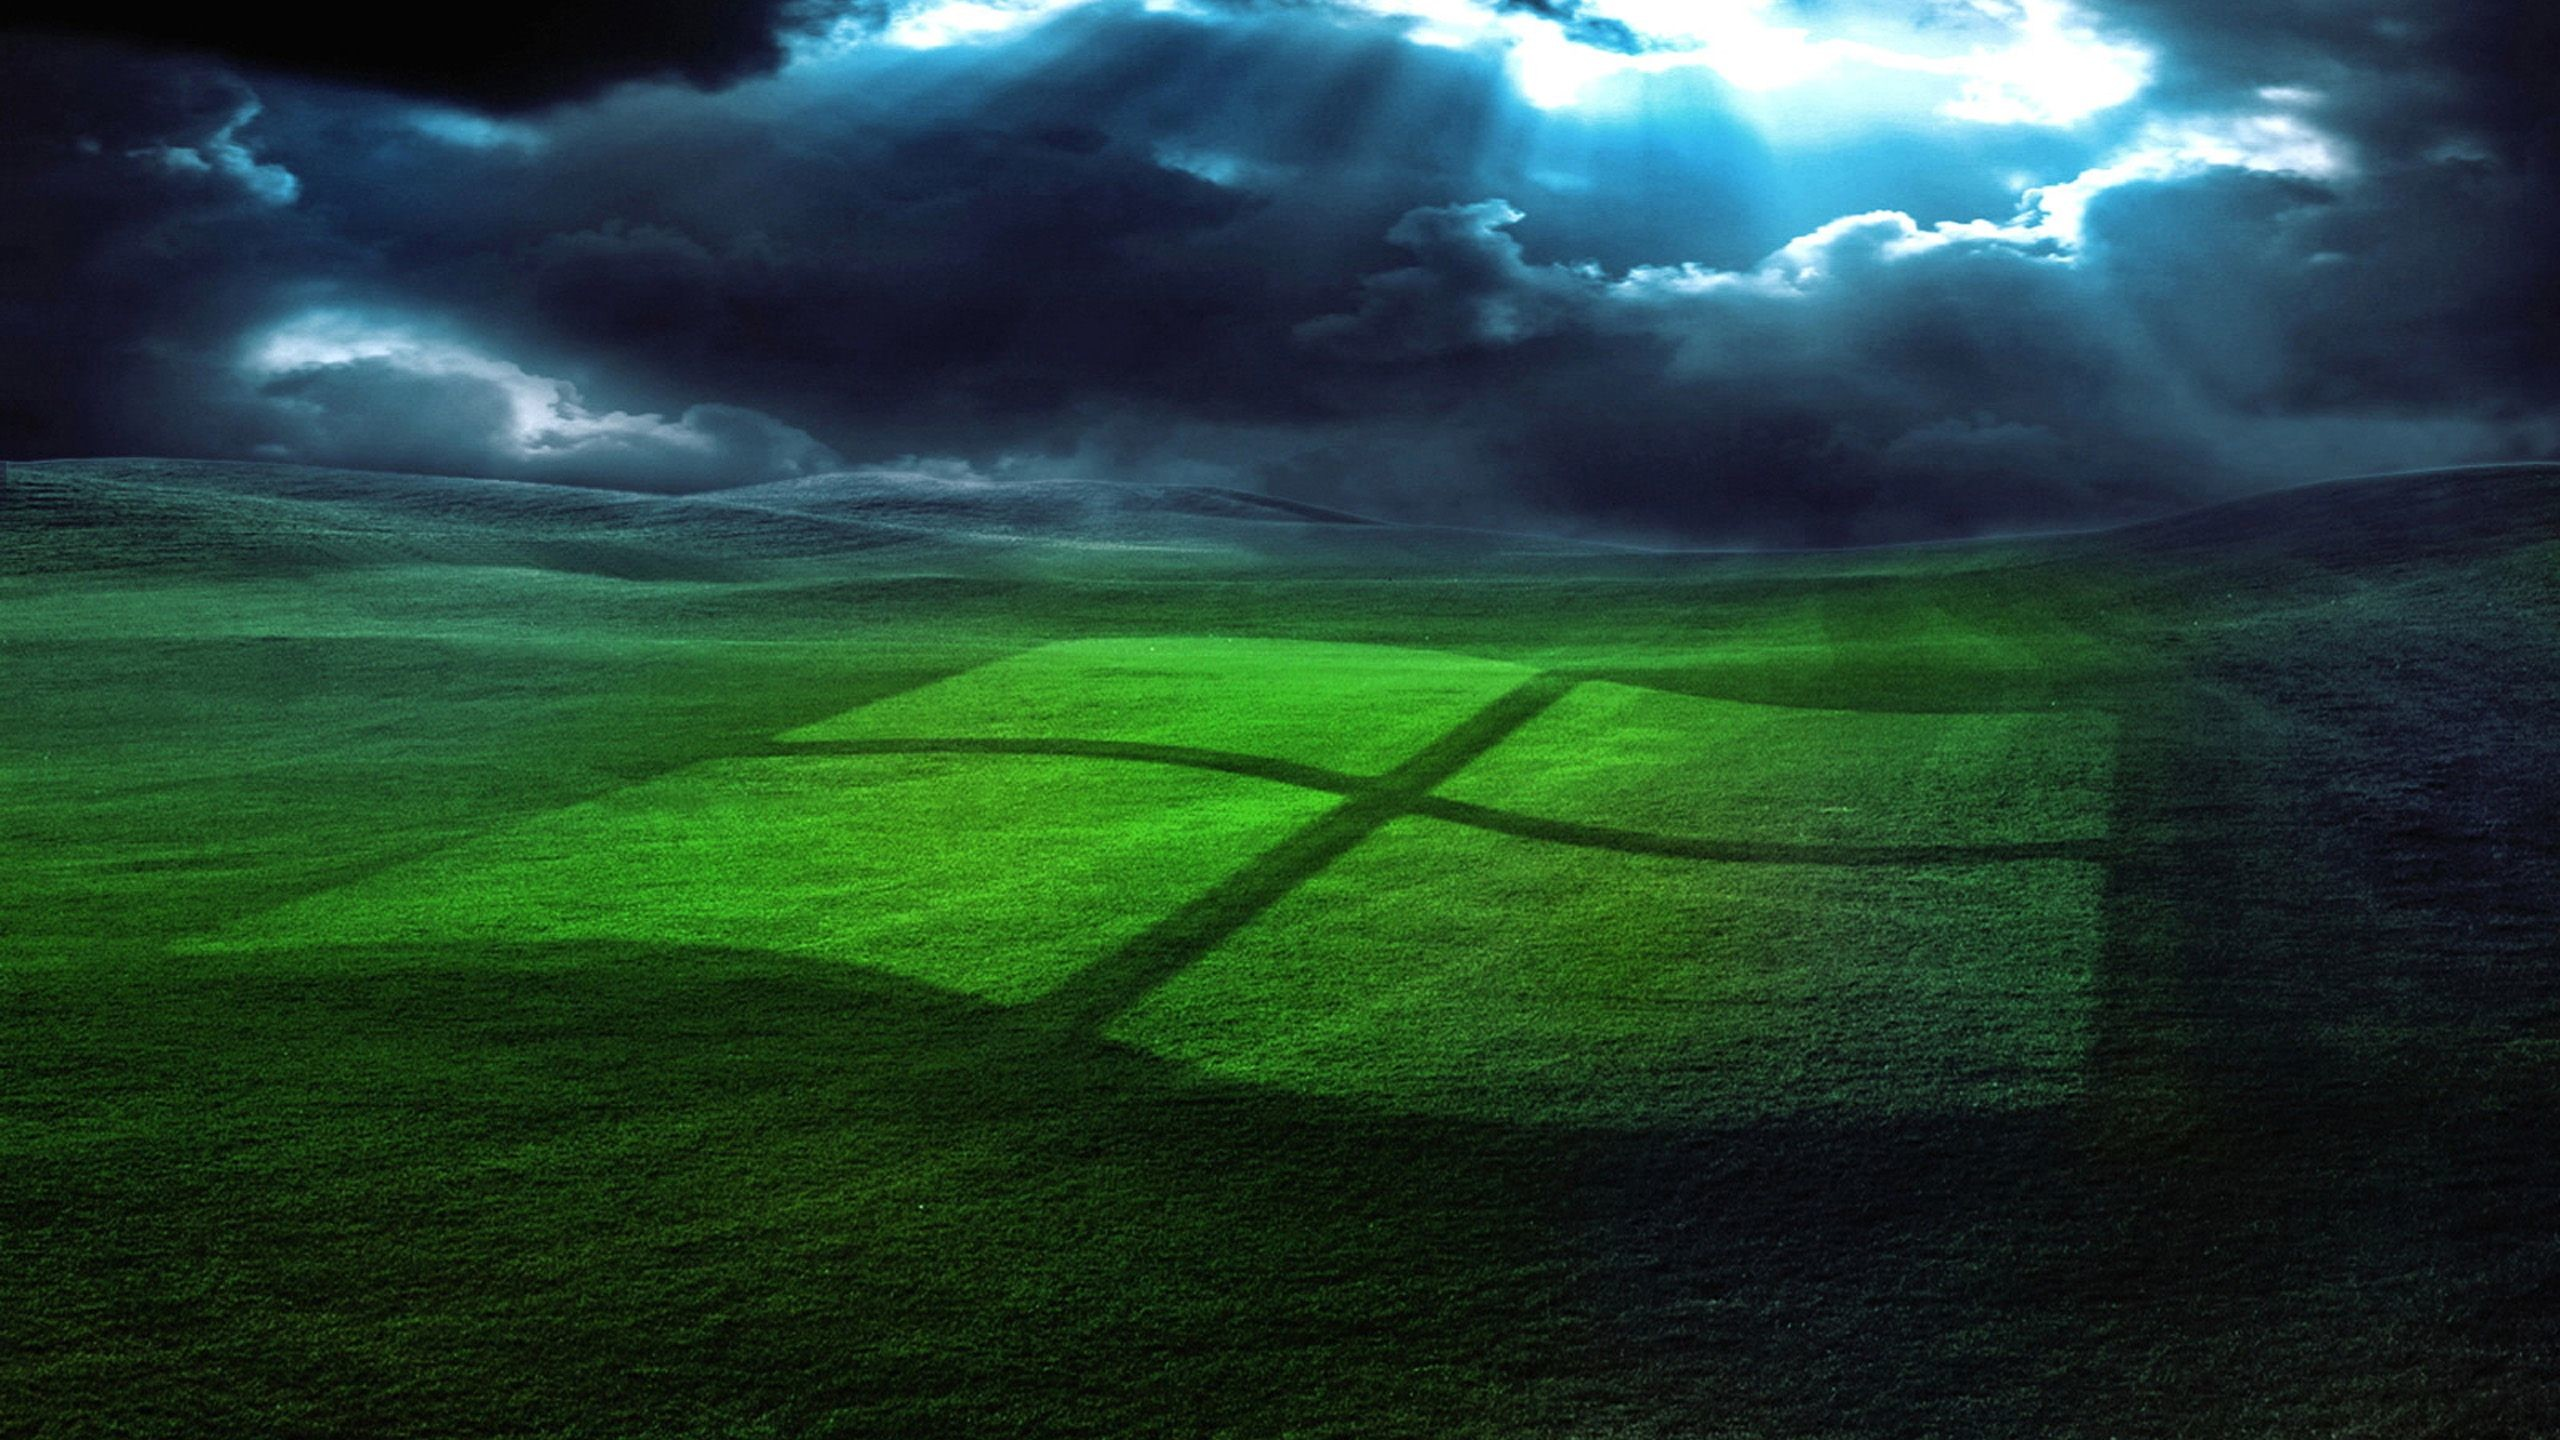 2560x1440 Animated Wallpaper Windows 8 PixelsTalk Net Live Wallpapers For Windows Xp  Free Download